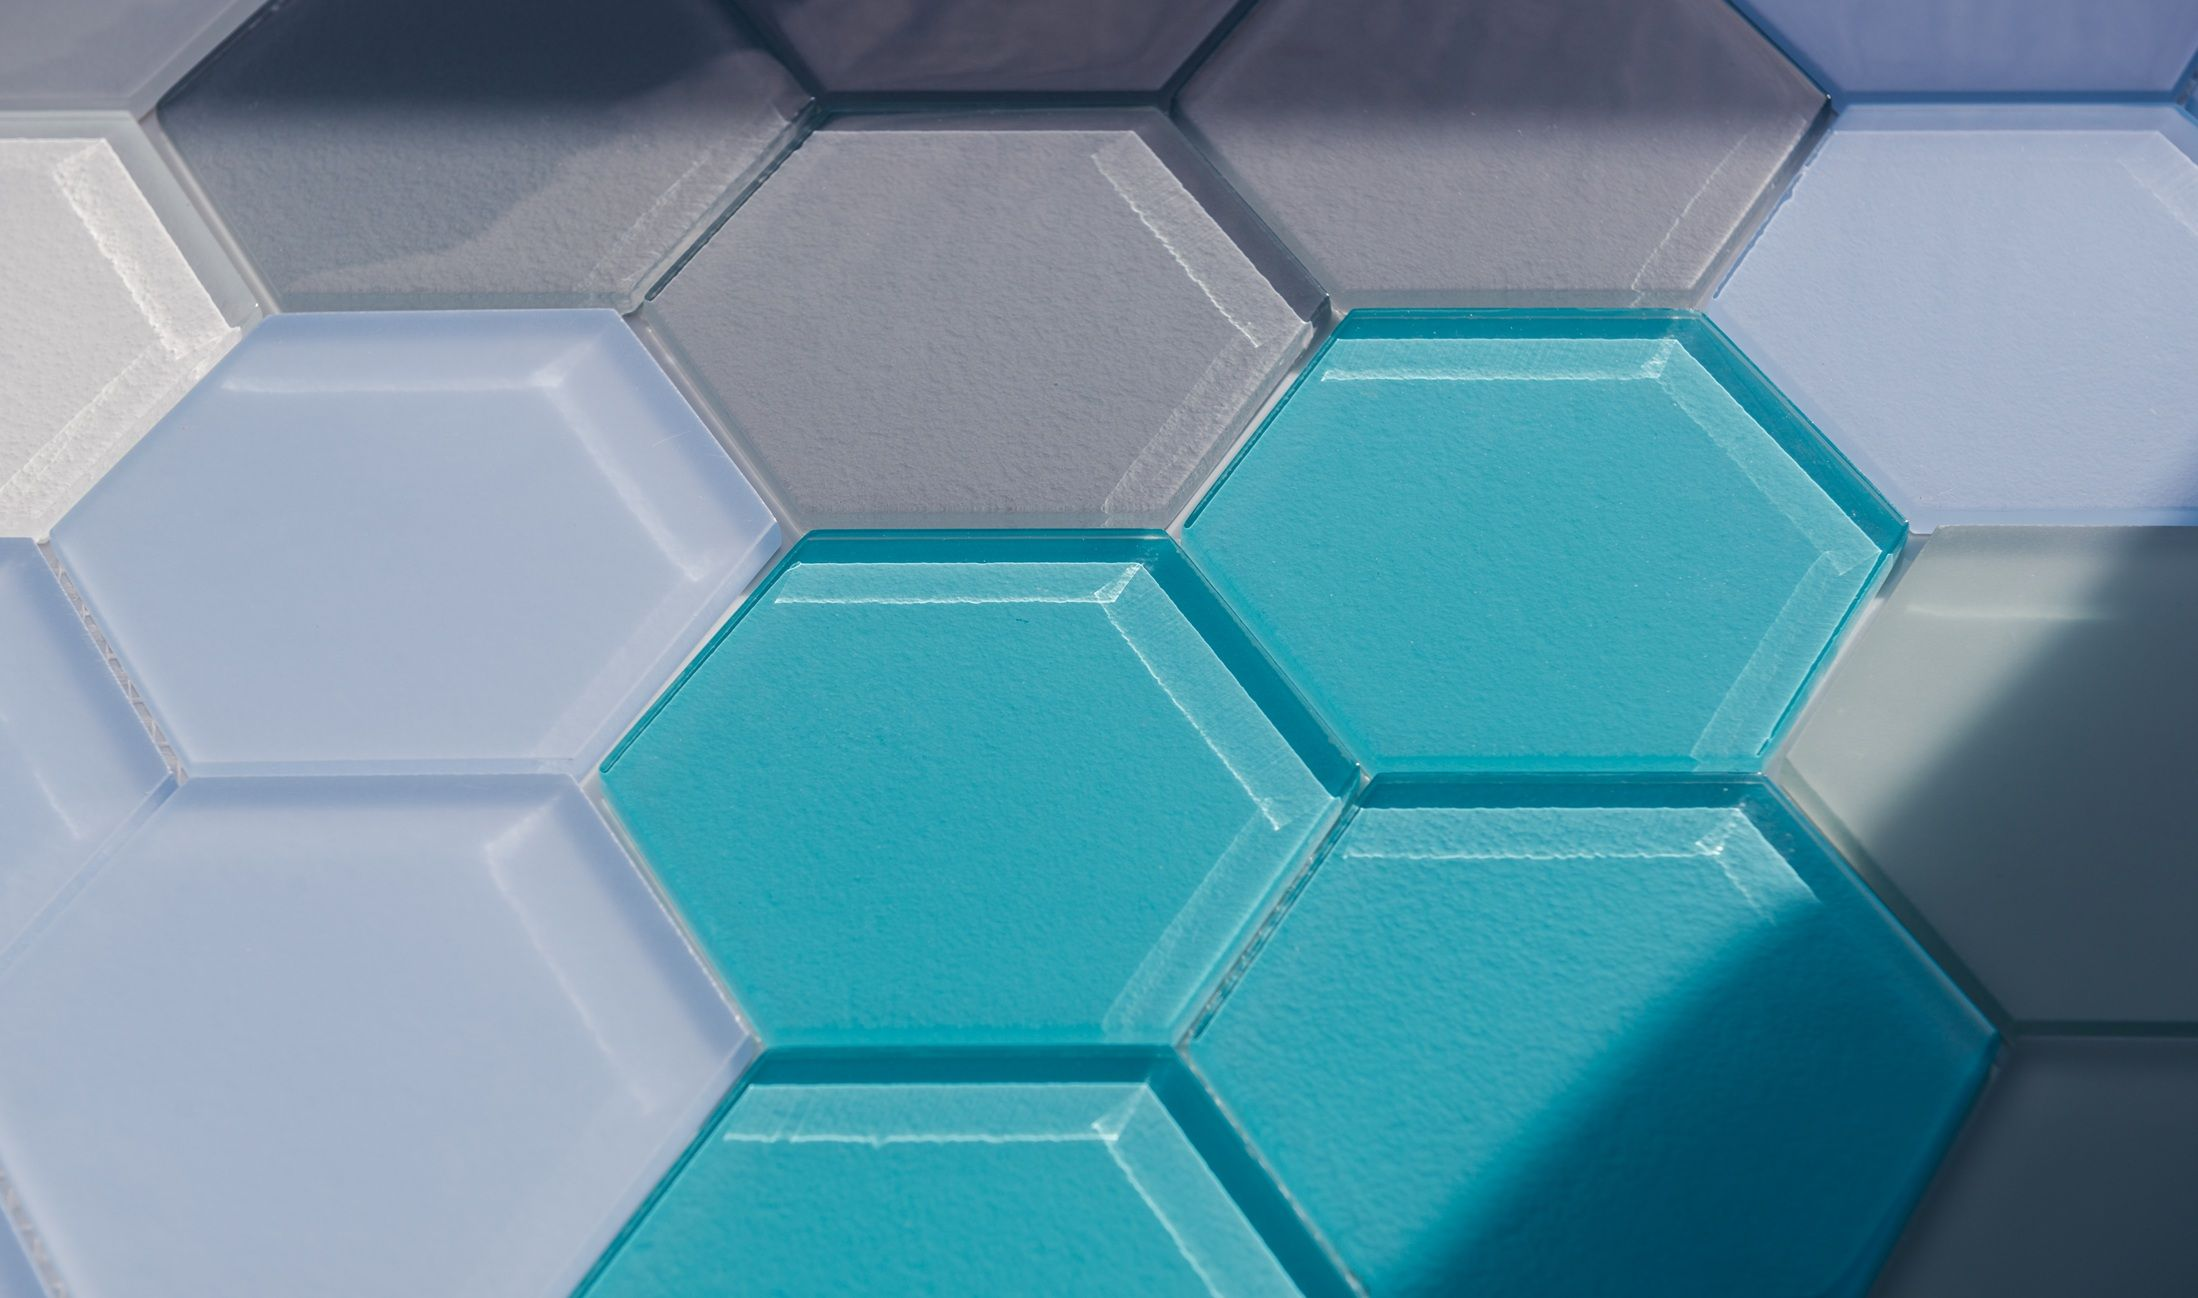 Our hexagon series is so beautiful Glass tile, Hexagon